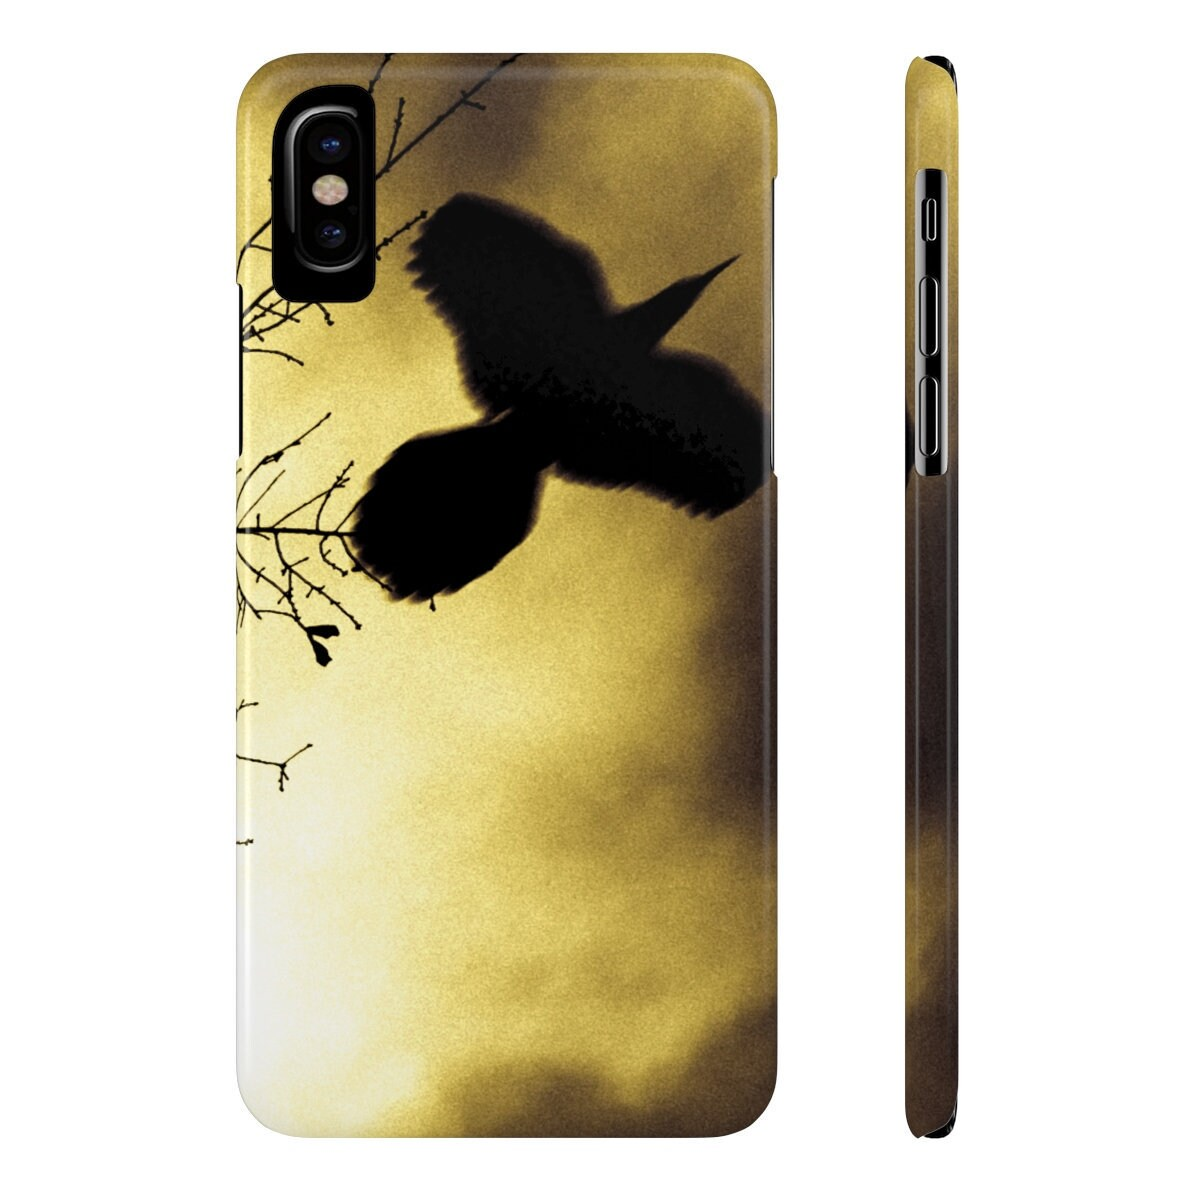 Smartphone Cases Crow Iphone Case Samsung Case Slim Smartphone Case Crow Raven Blackbird Black Bird Masculine For Guys Sepia Yellow Flying Bird